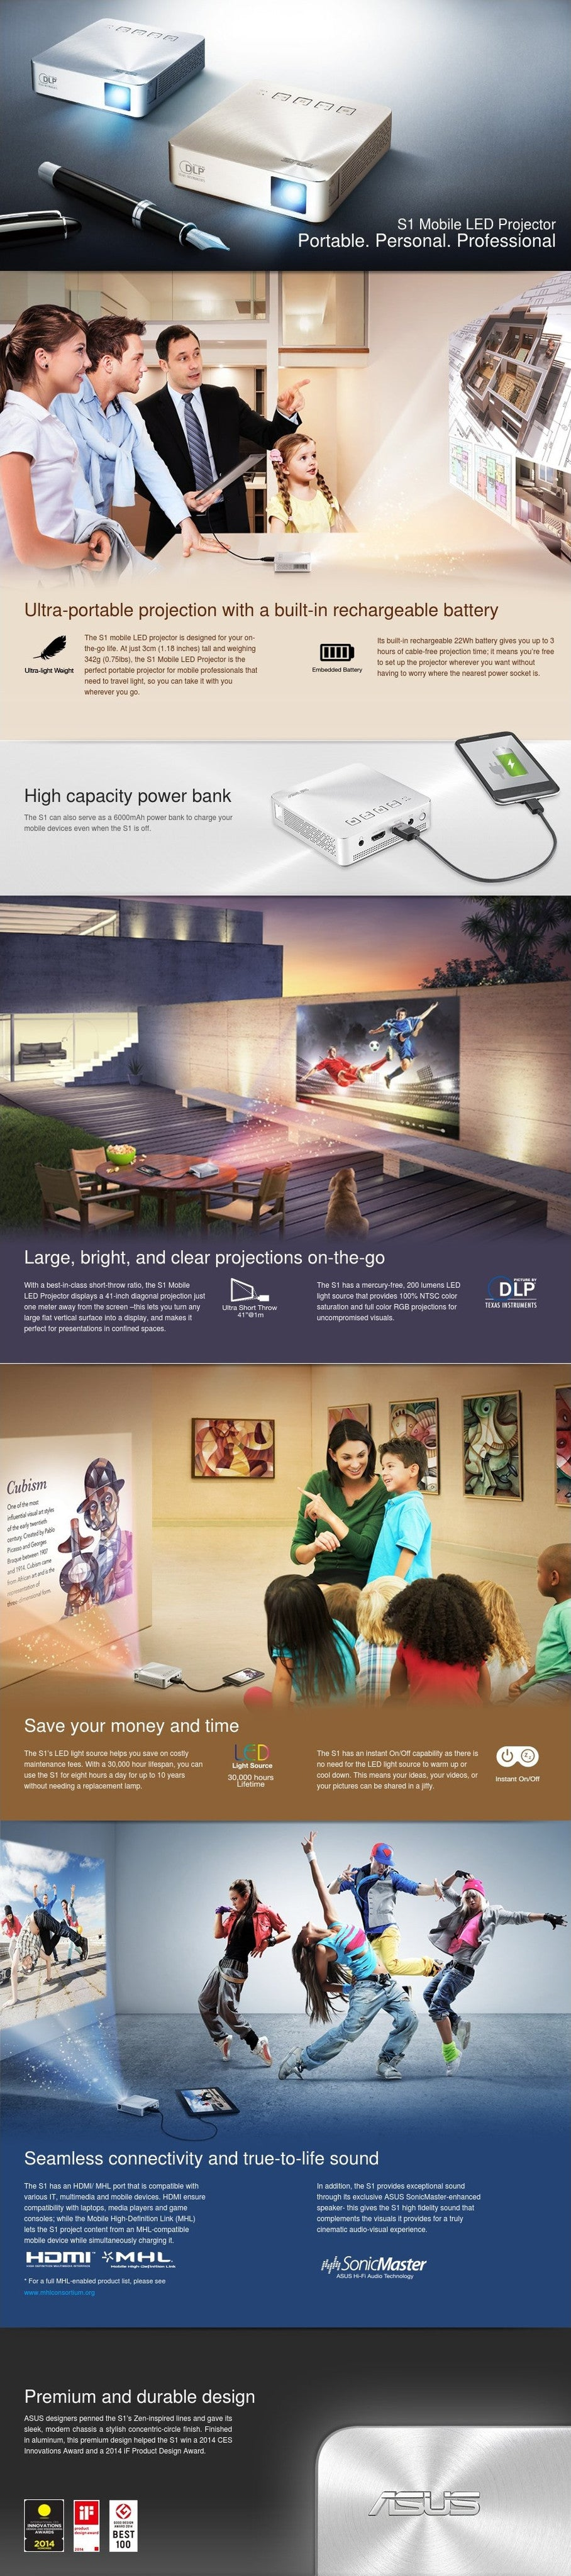 ASUS S1 Portable LED Projector, 200 Lumens, Built-in 6000mAh Battery, Up to 3-hour Projection, Power Bank, HDMI/MHL